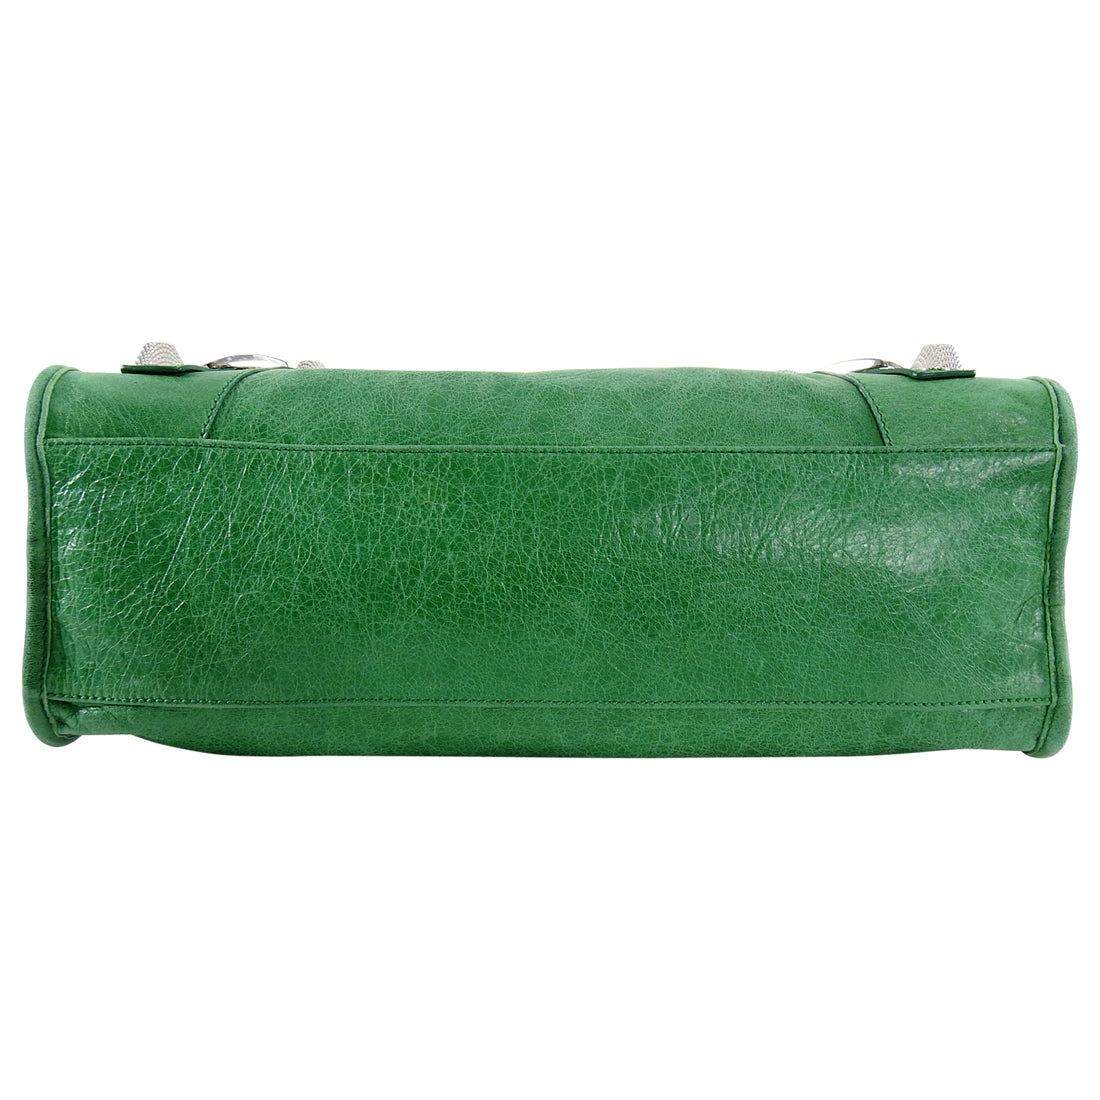 Balenciaga Green Motocross Giant 21 City Bag